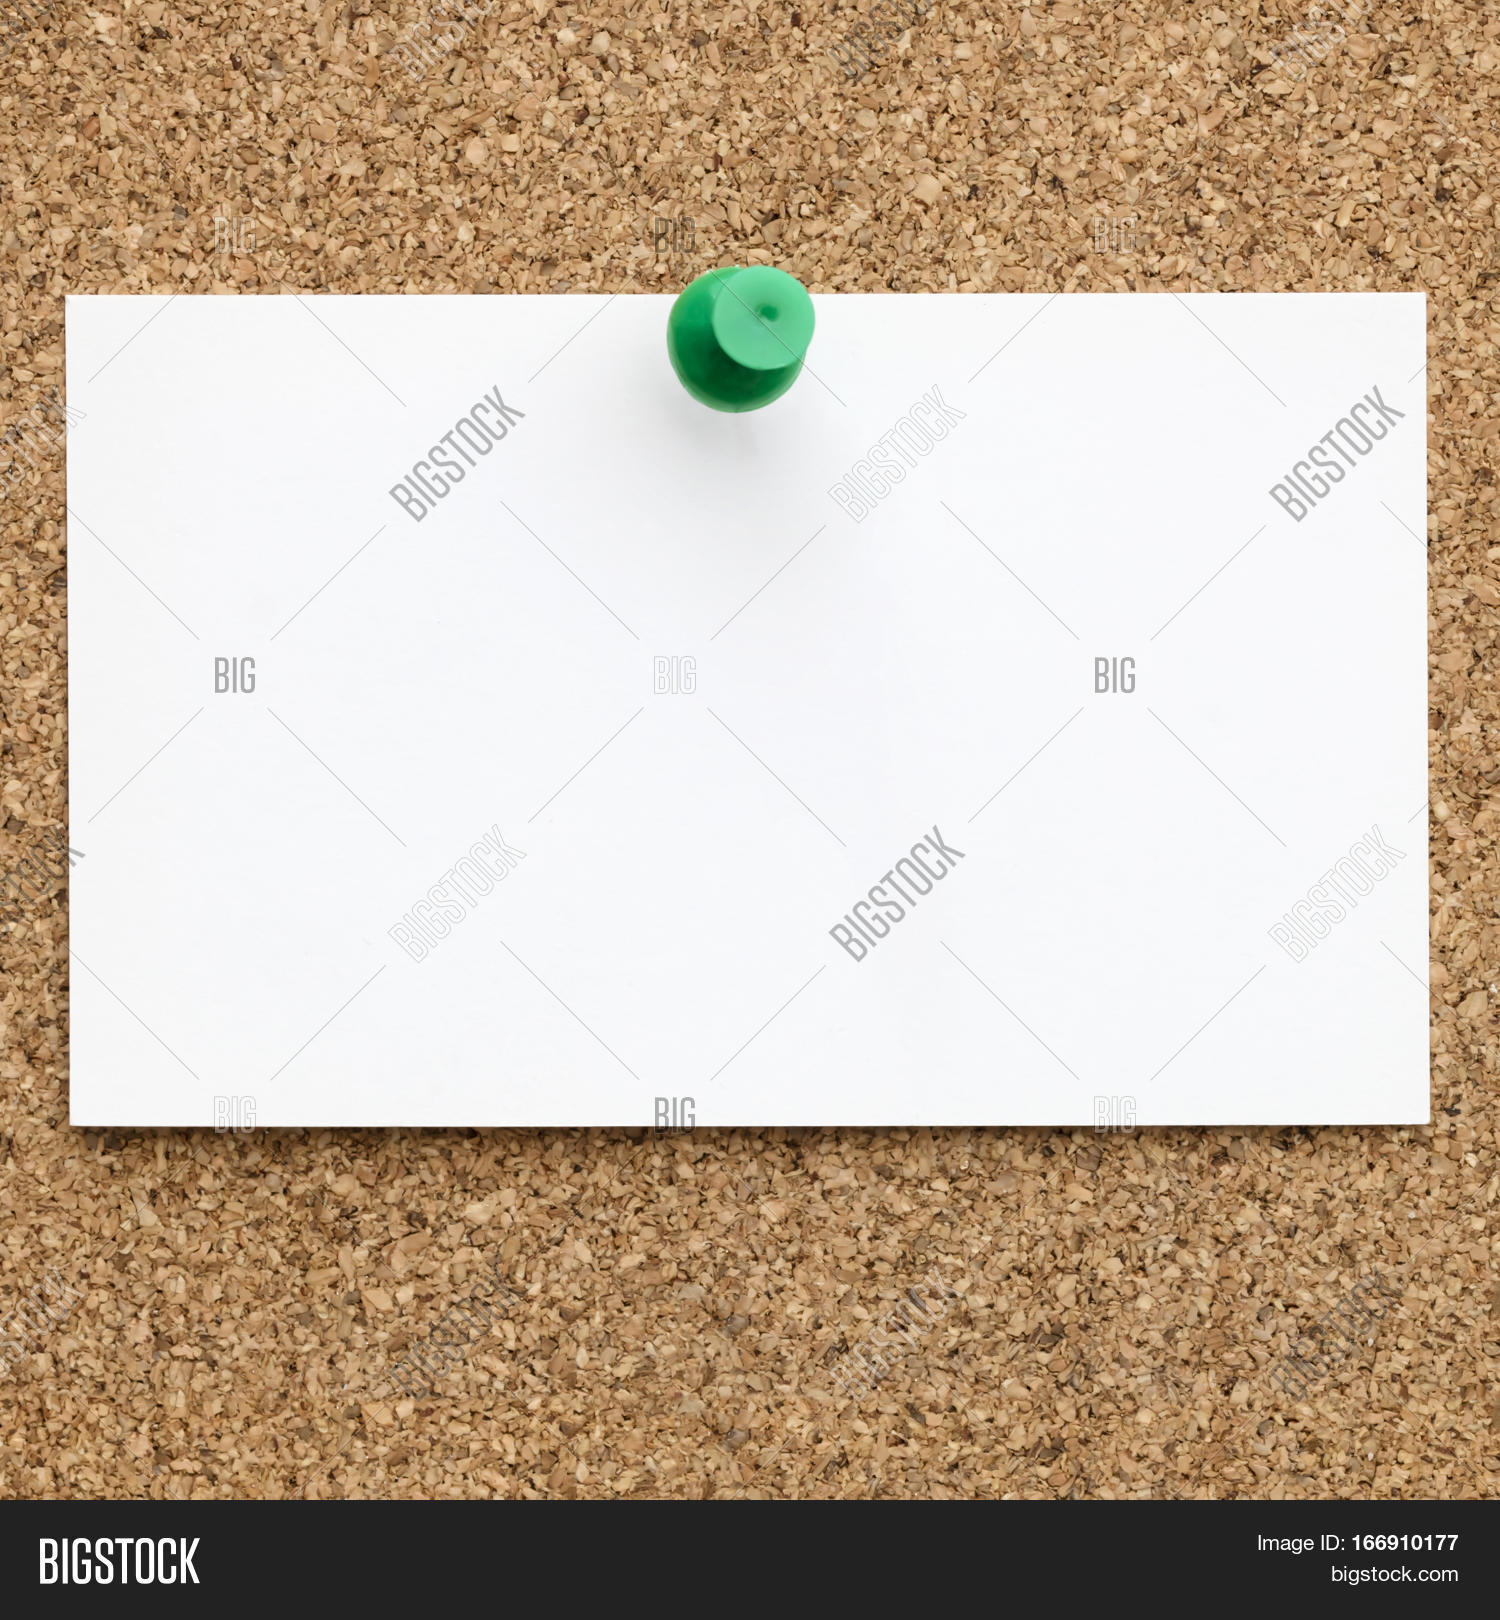 Blank business card image photo free trial bigstock blank business card with green push pin on cork board reheart Gallery